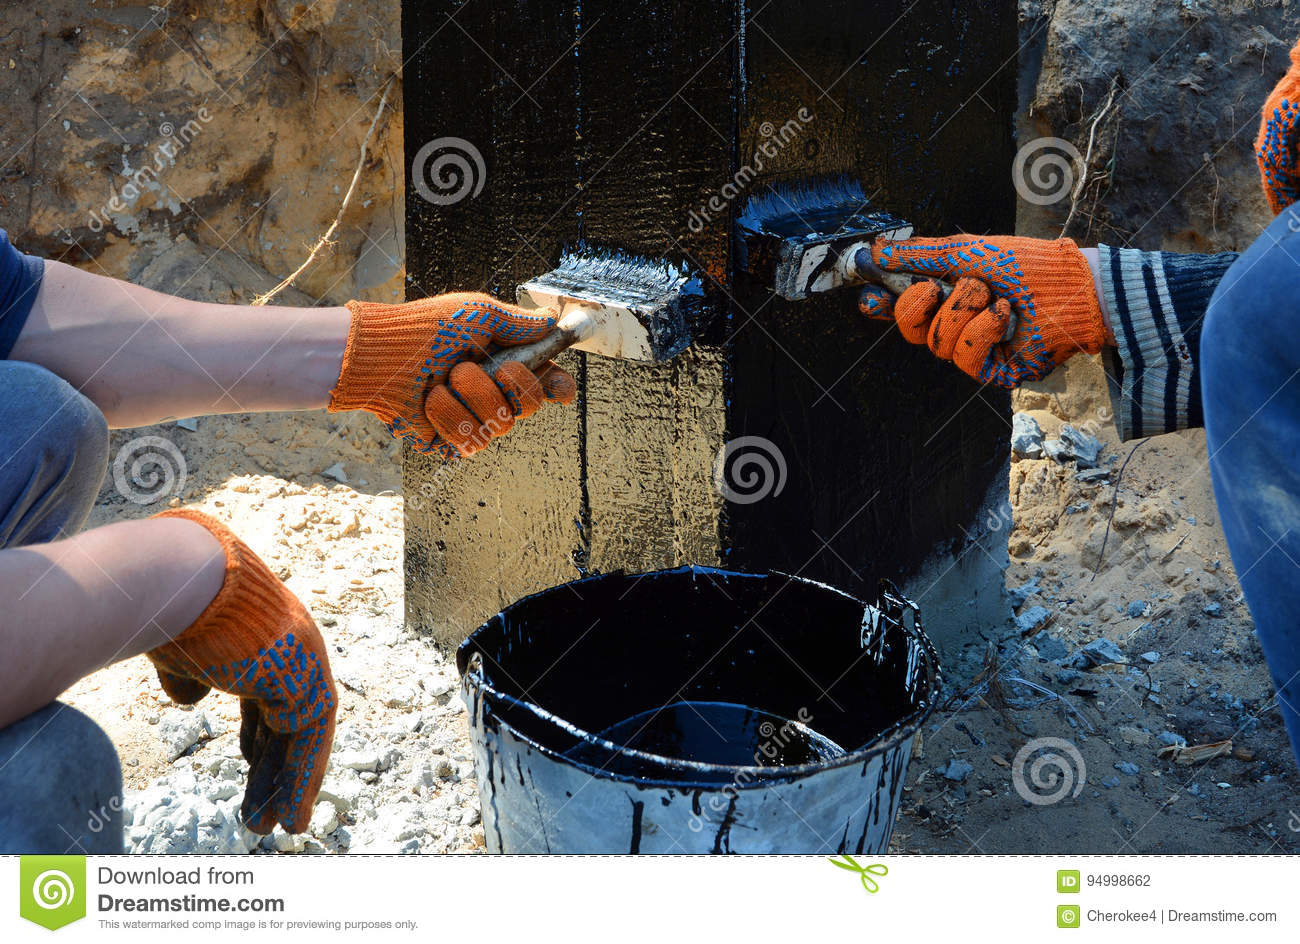 contractor painting black coal tar or bitumen at concrete surface by